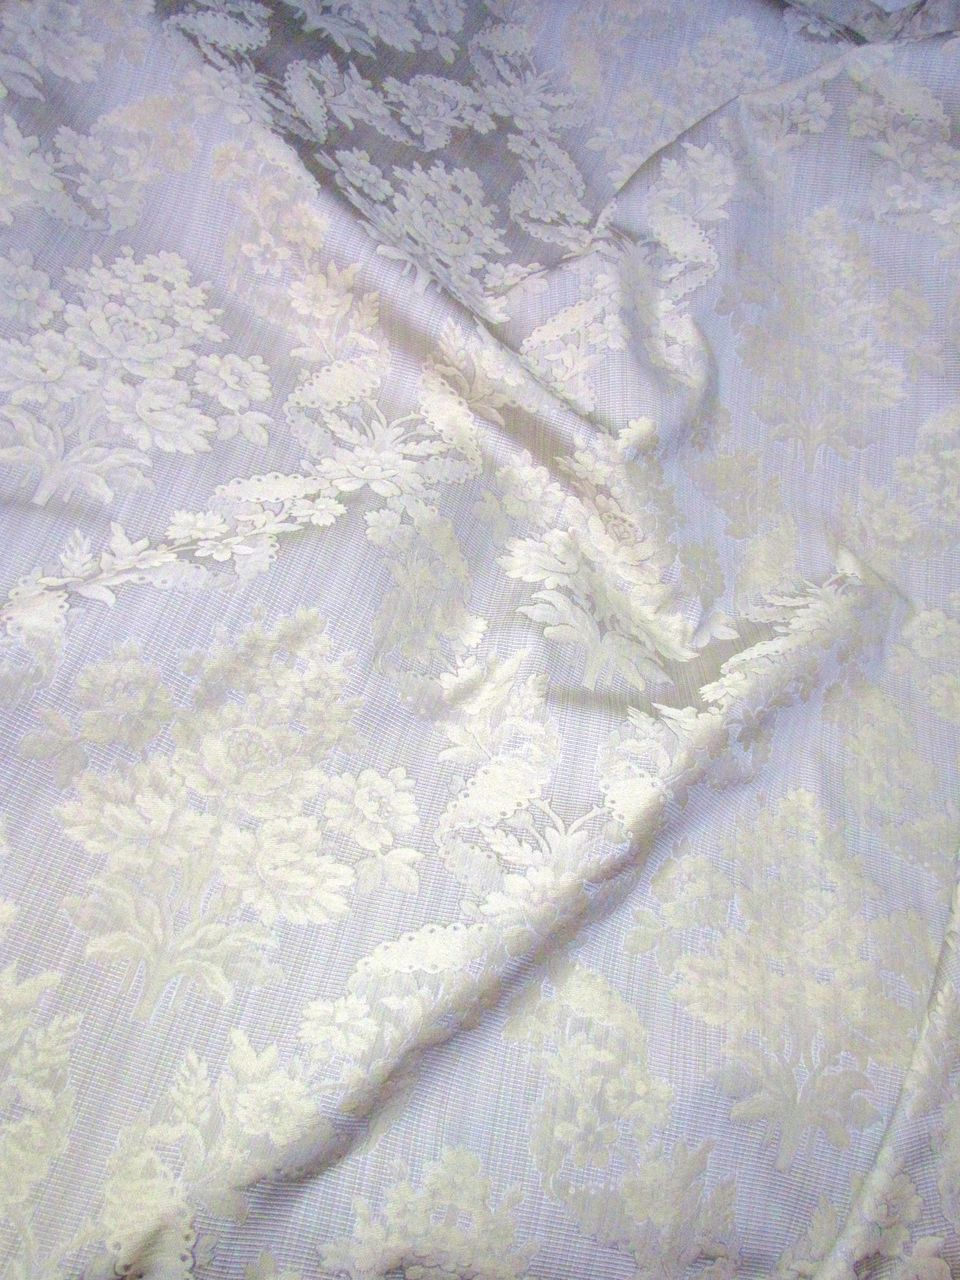 Elegant 2 1/2 Yds + Bolt End of Fully Woven Taupe Brocade